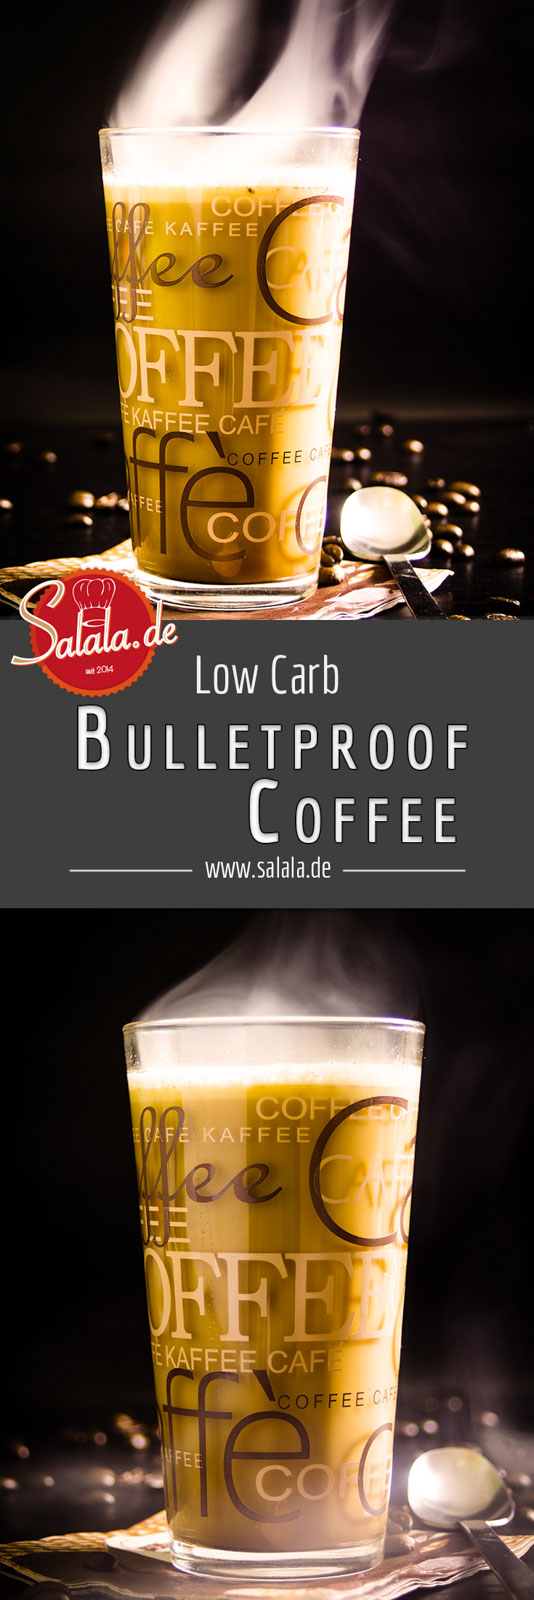 bulletproof coffee butterkaffee low carb fr hst ck. Black Bedroom Furniture Sets. Home Design Ideas